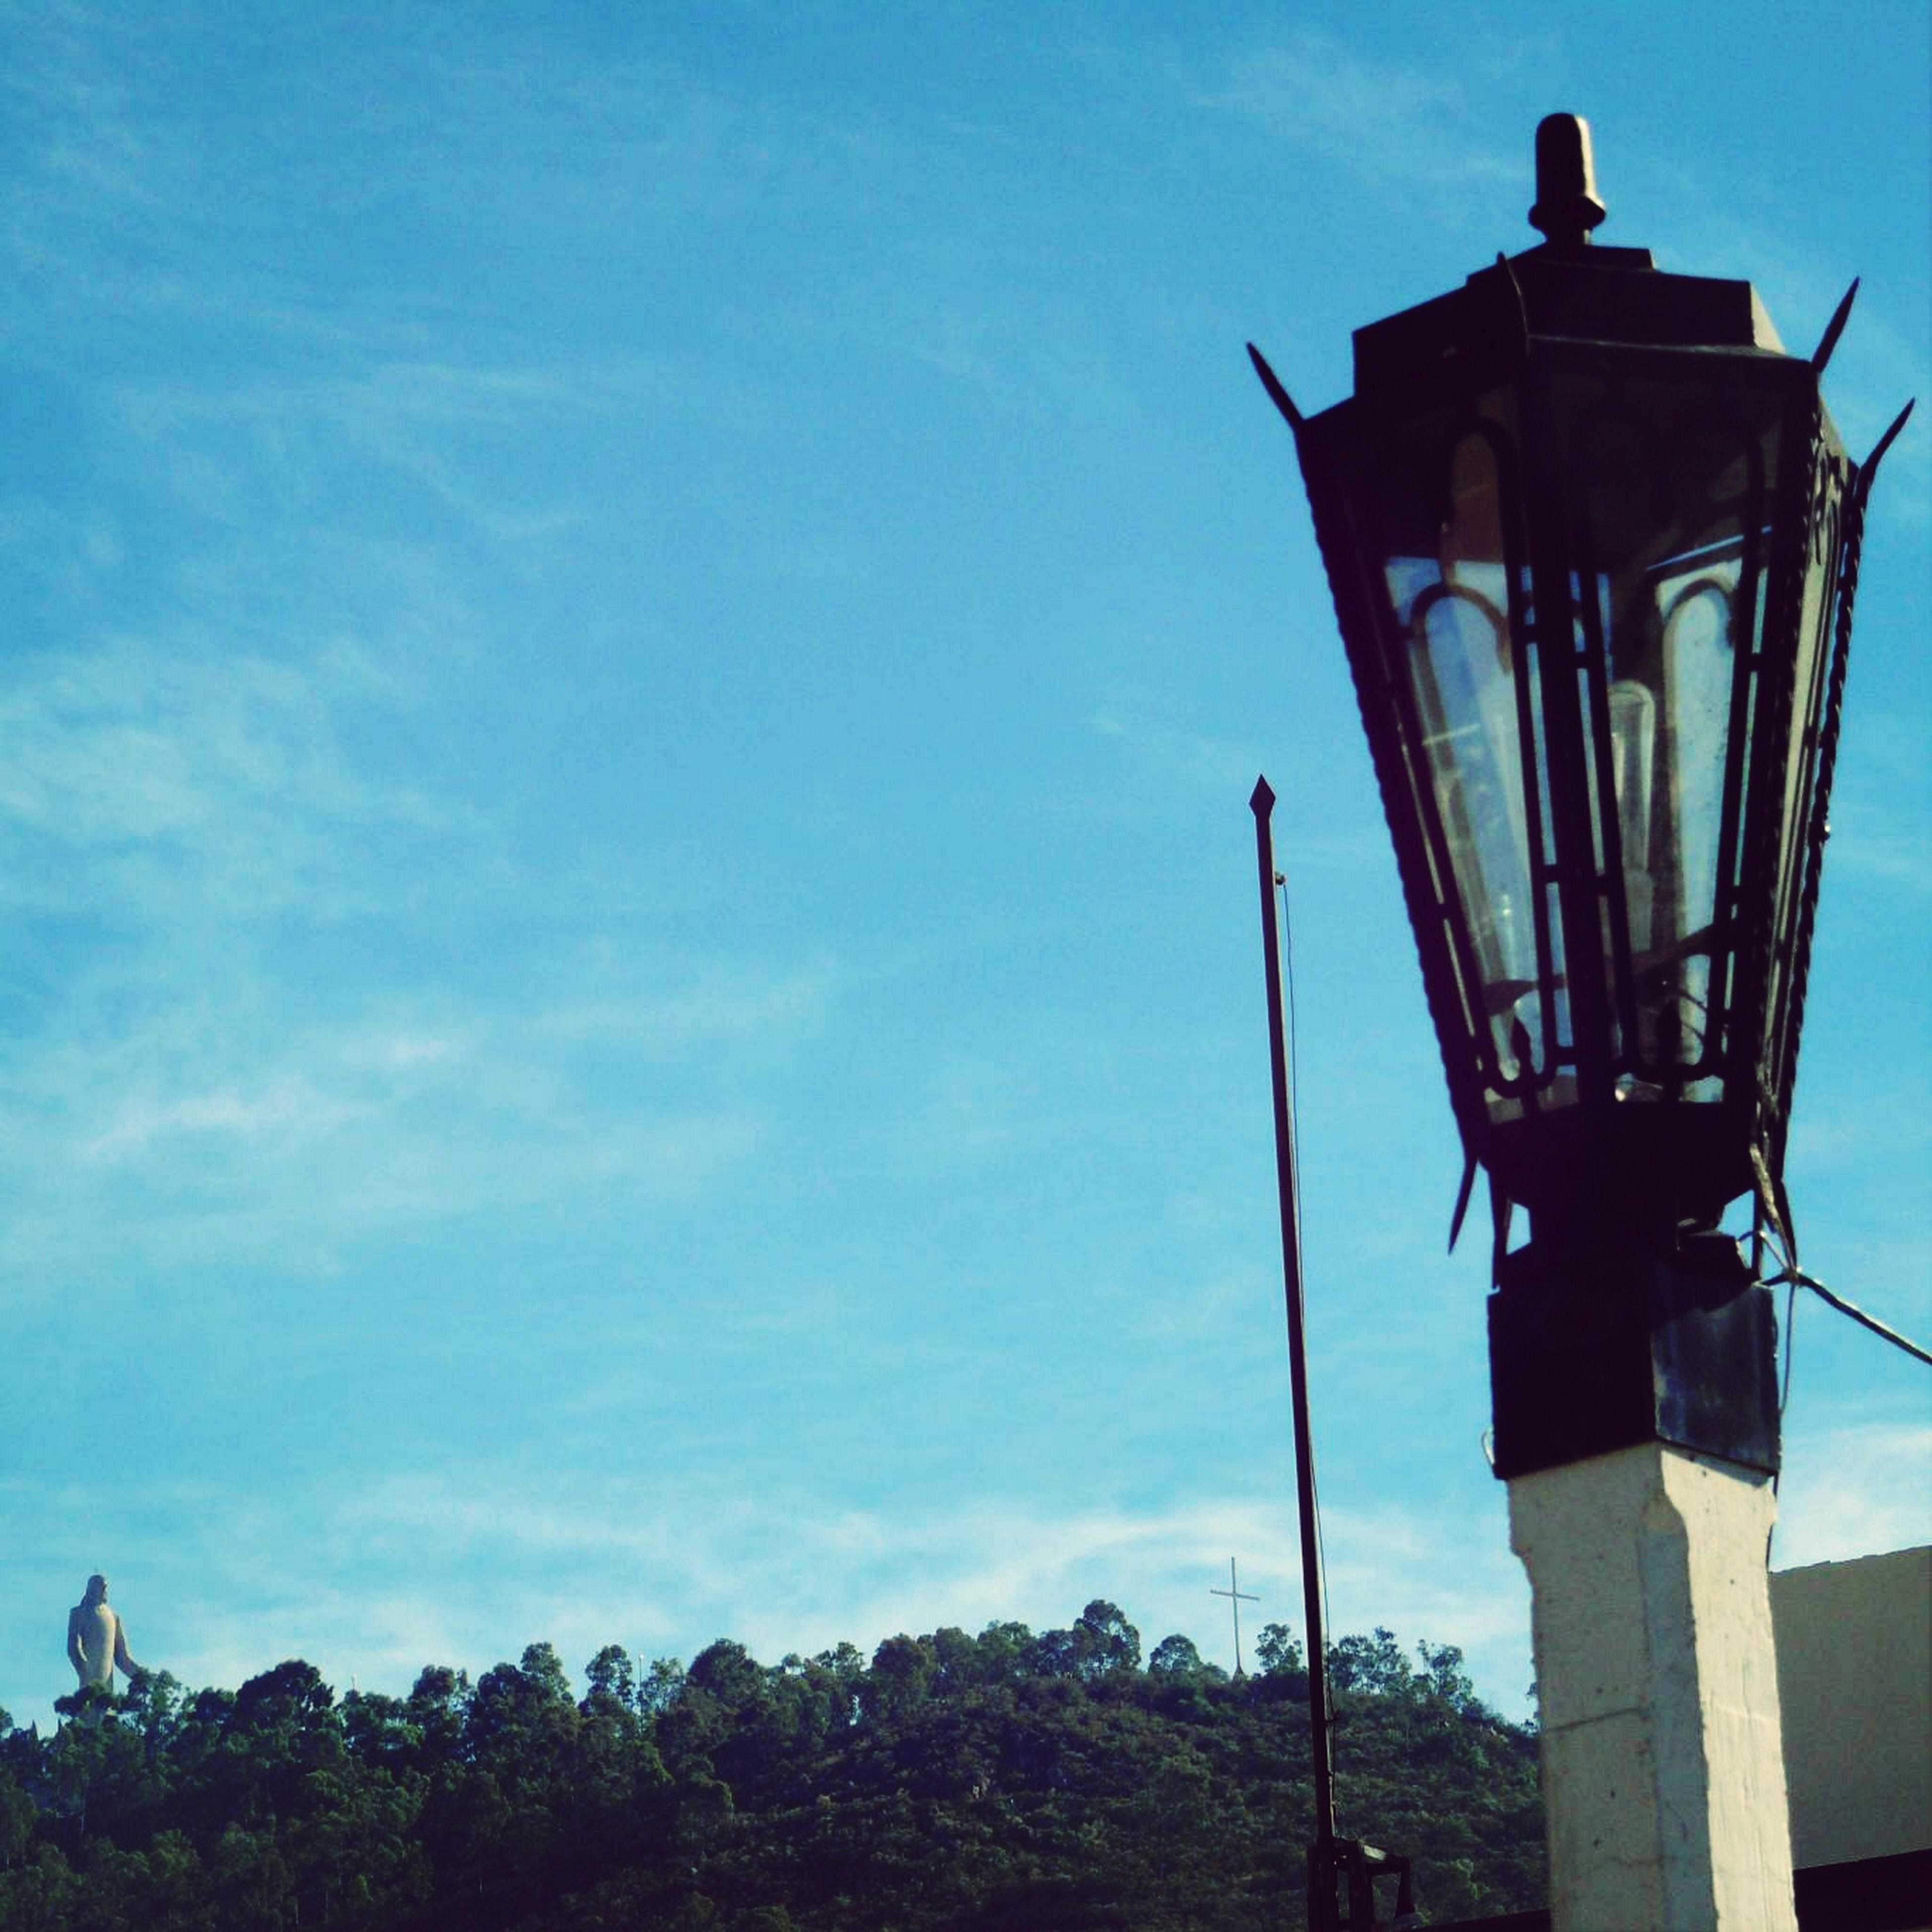 low angle view, sky, blue, street light, lighting equipment, pole, nature, tree, built structure, day, no people, cloud, outdoors, tranquility, cloud - sky, sunlight, clear sky, safety, protection, metal